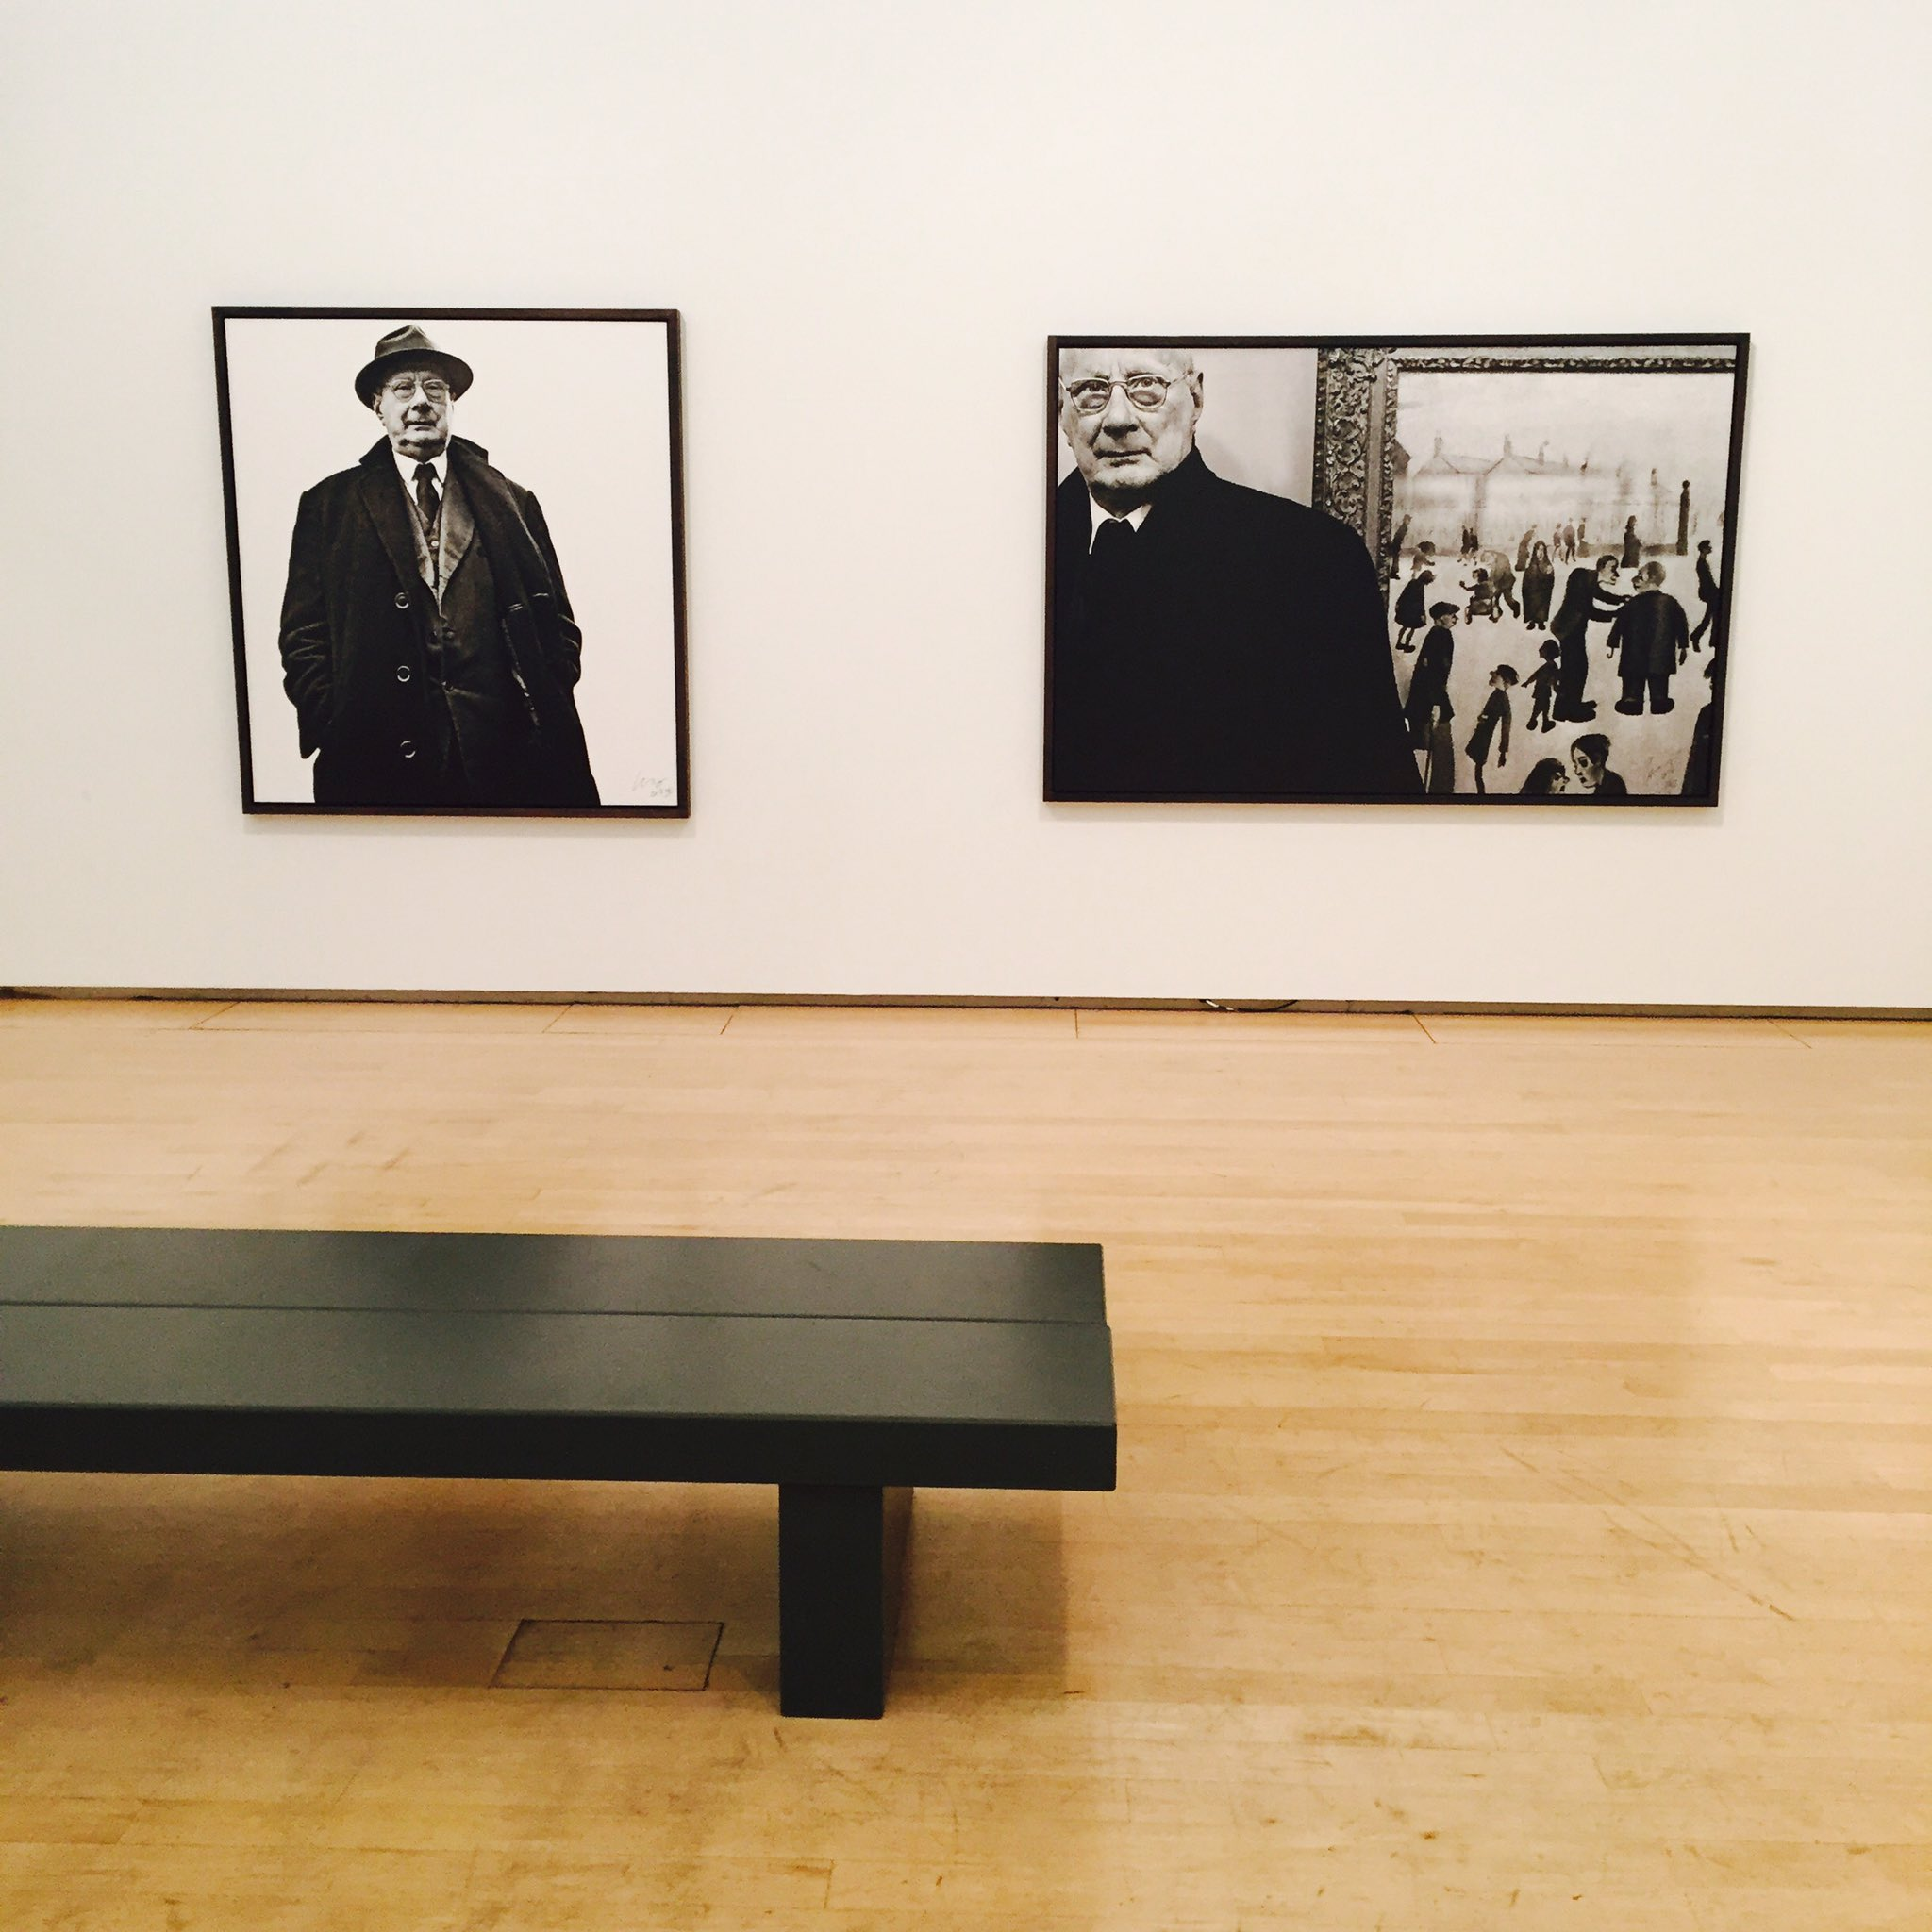 Quick break to take in the wonderfully intimate #LowryAtHome @The_Lowry Amazingly revealing photos from #CliveArrowsmith #LSLowry #Salford https://t.co/Ids7NAbTdp